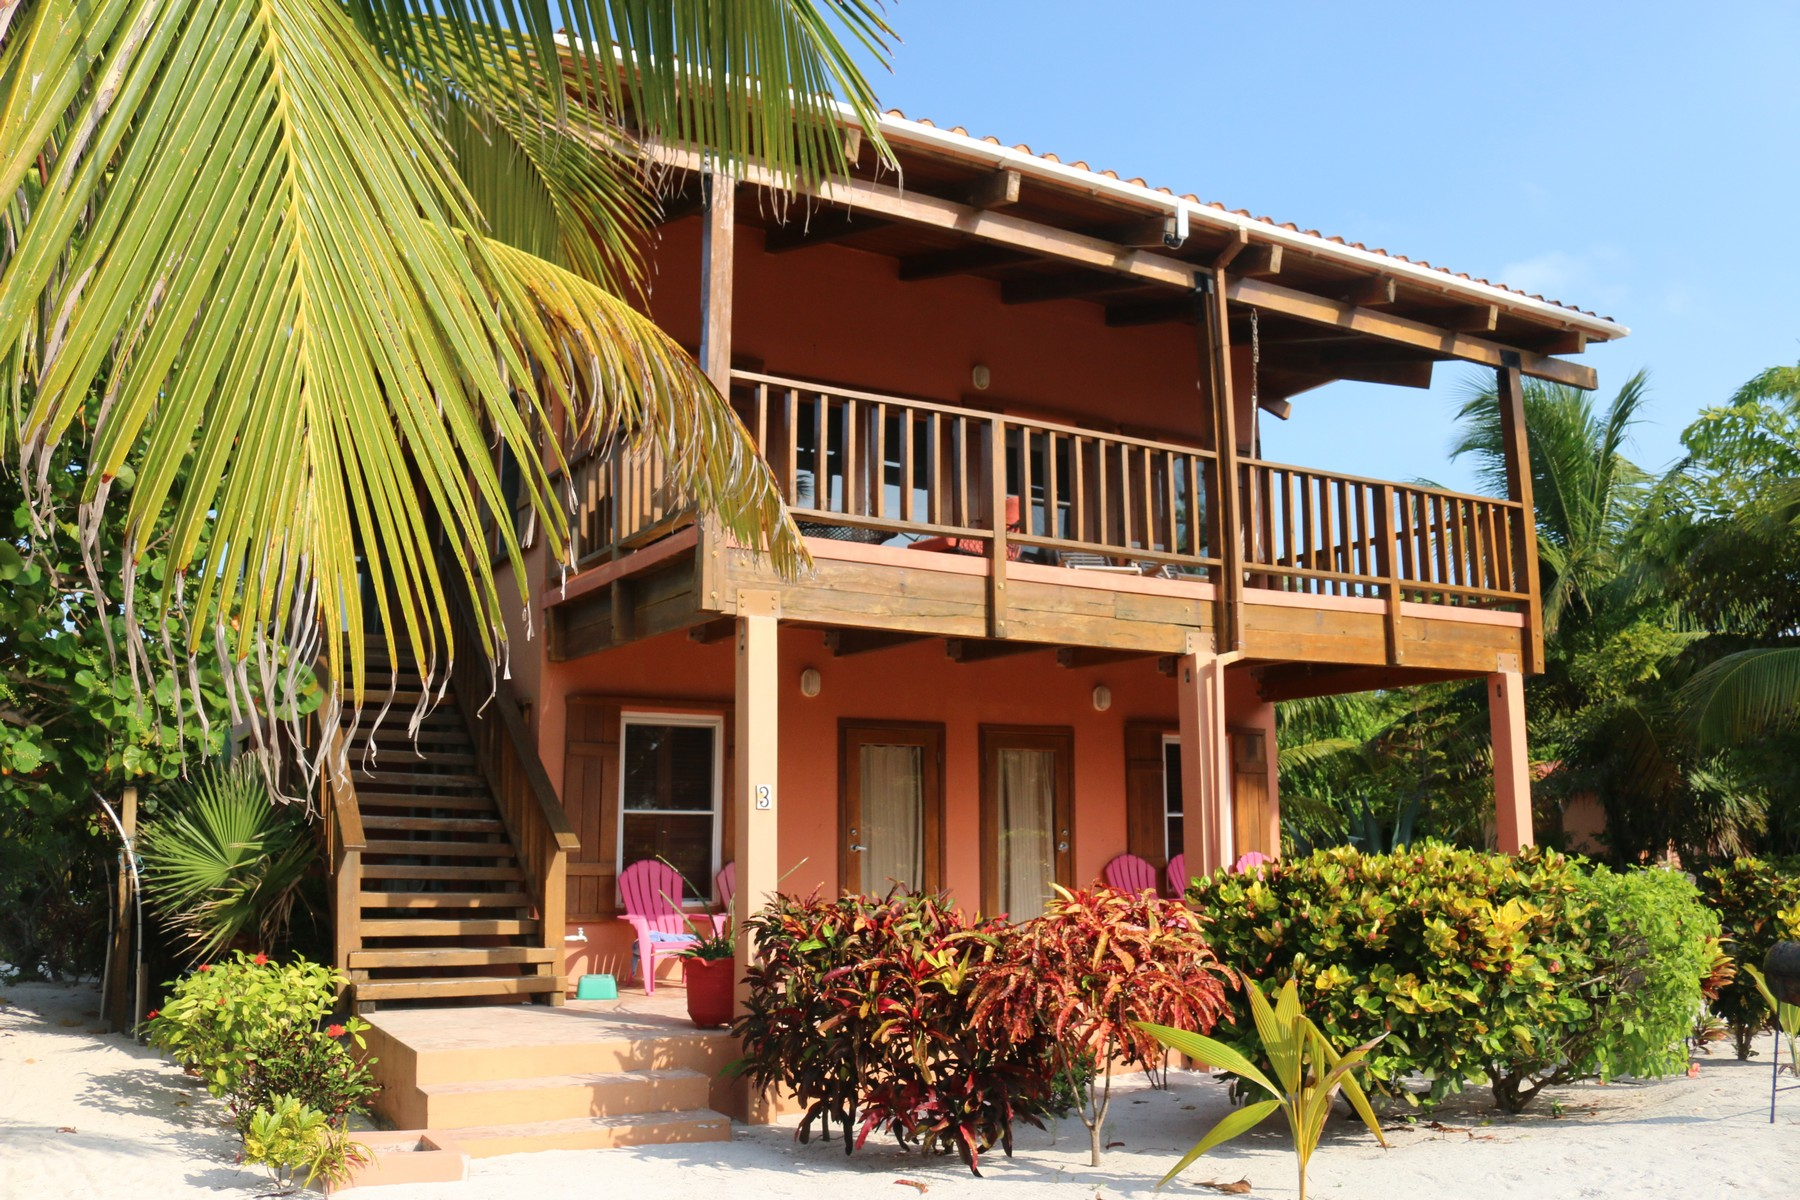 Single Family Home for Rent at Coral Caye Villa San Pedro Town, Ambergris Caye Belize